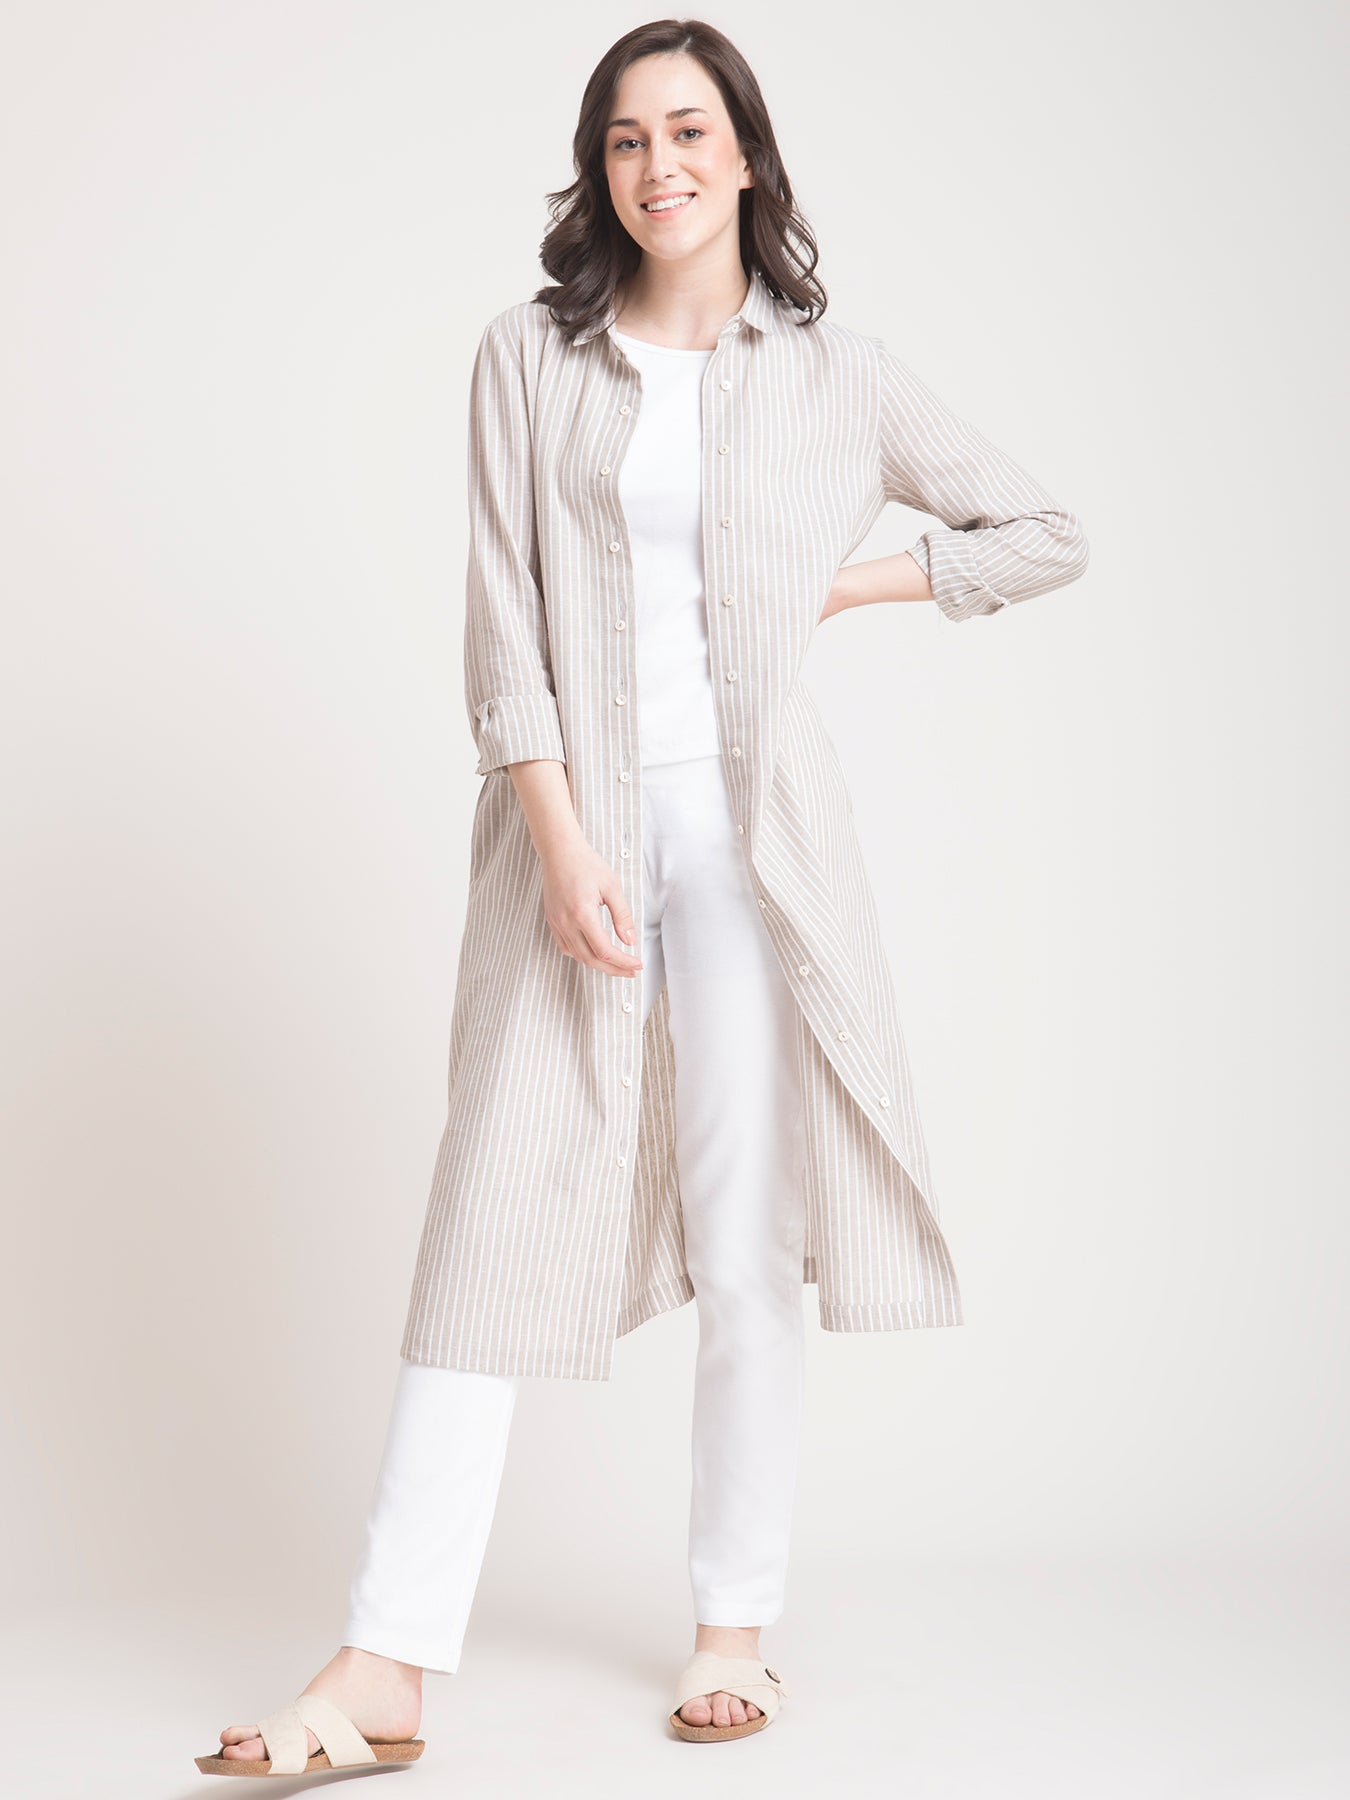 Linen Striped Shirt Dress and Pants Co-ord - Beige and White